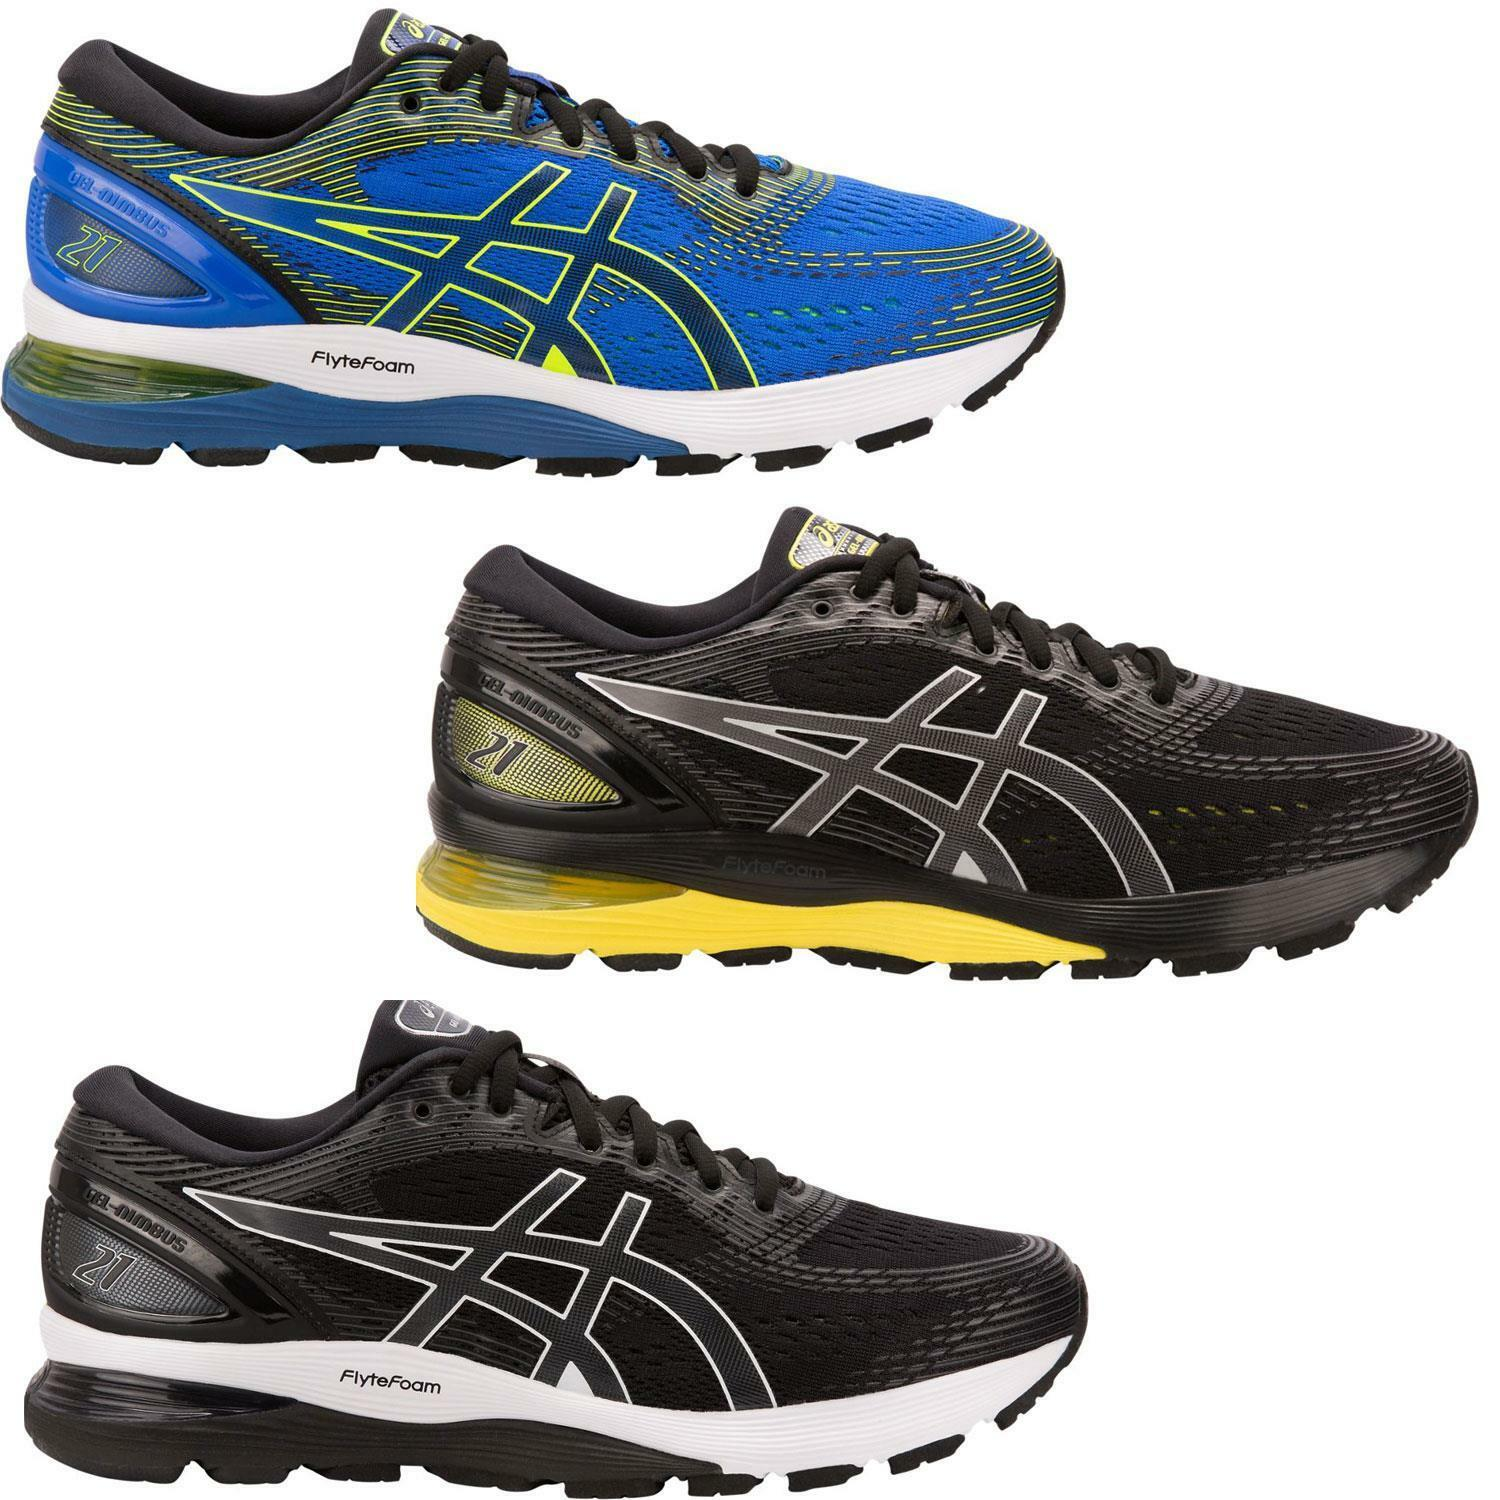 Asics Mens Gel Nimbus 21 Cushioned Breathable Running shoes